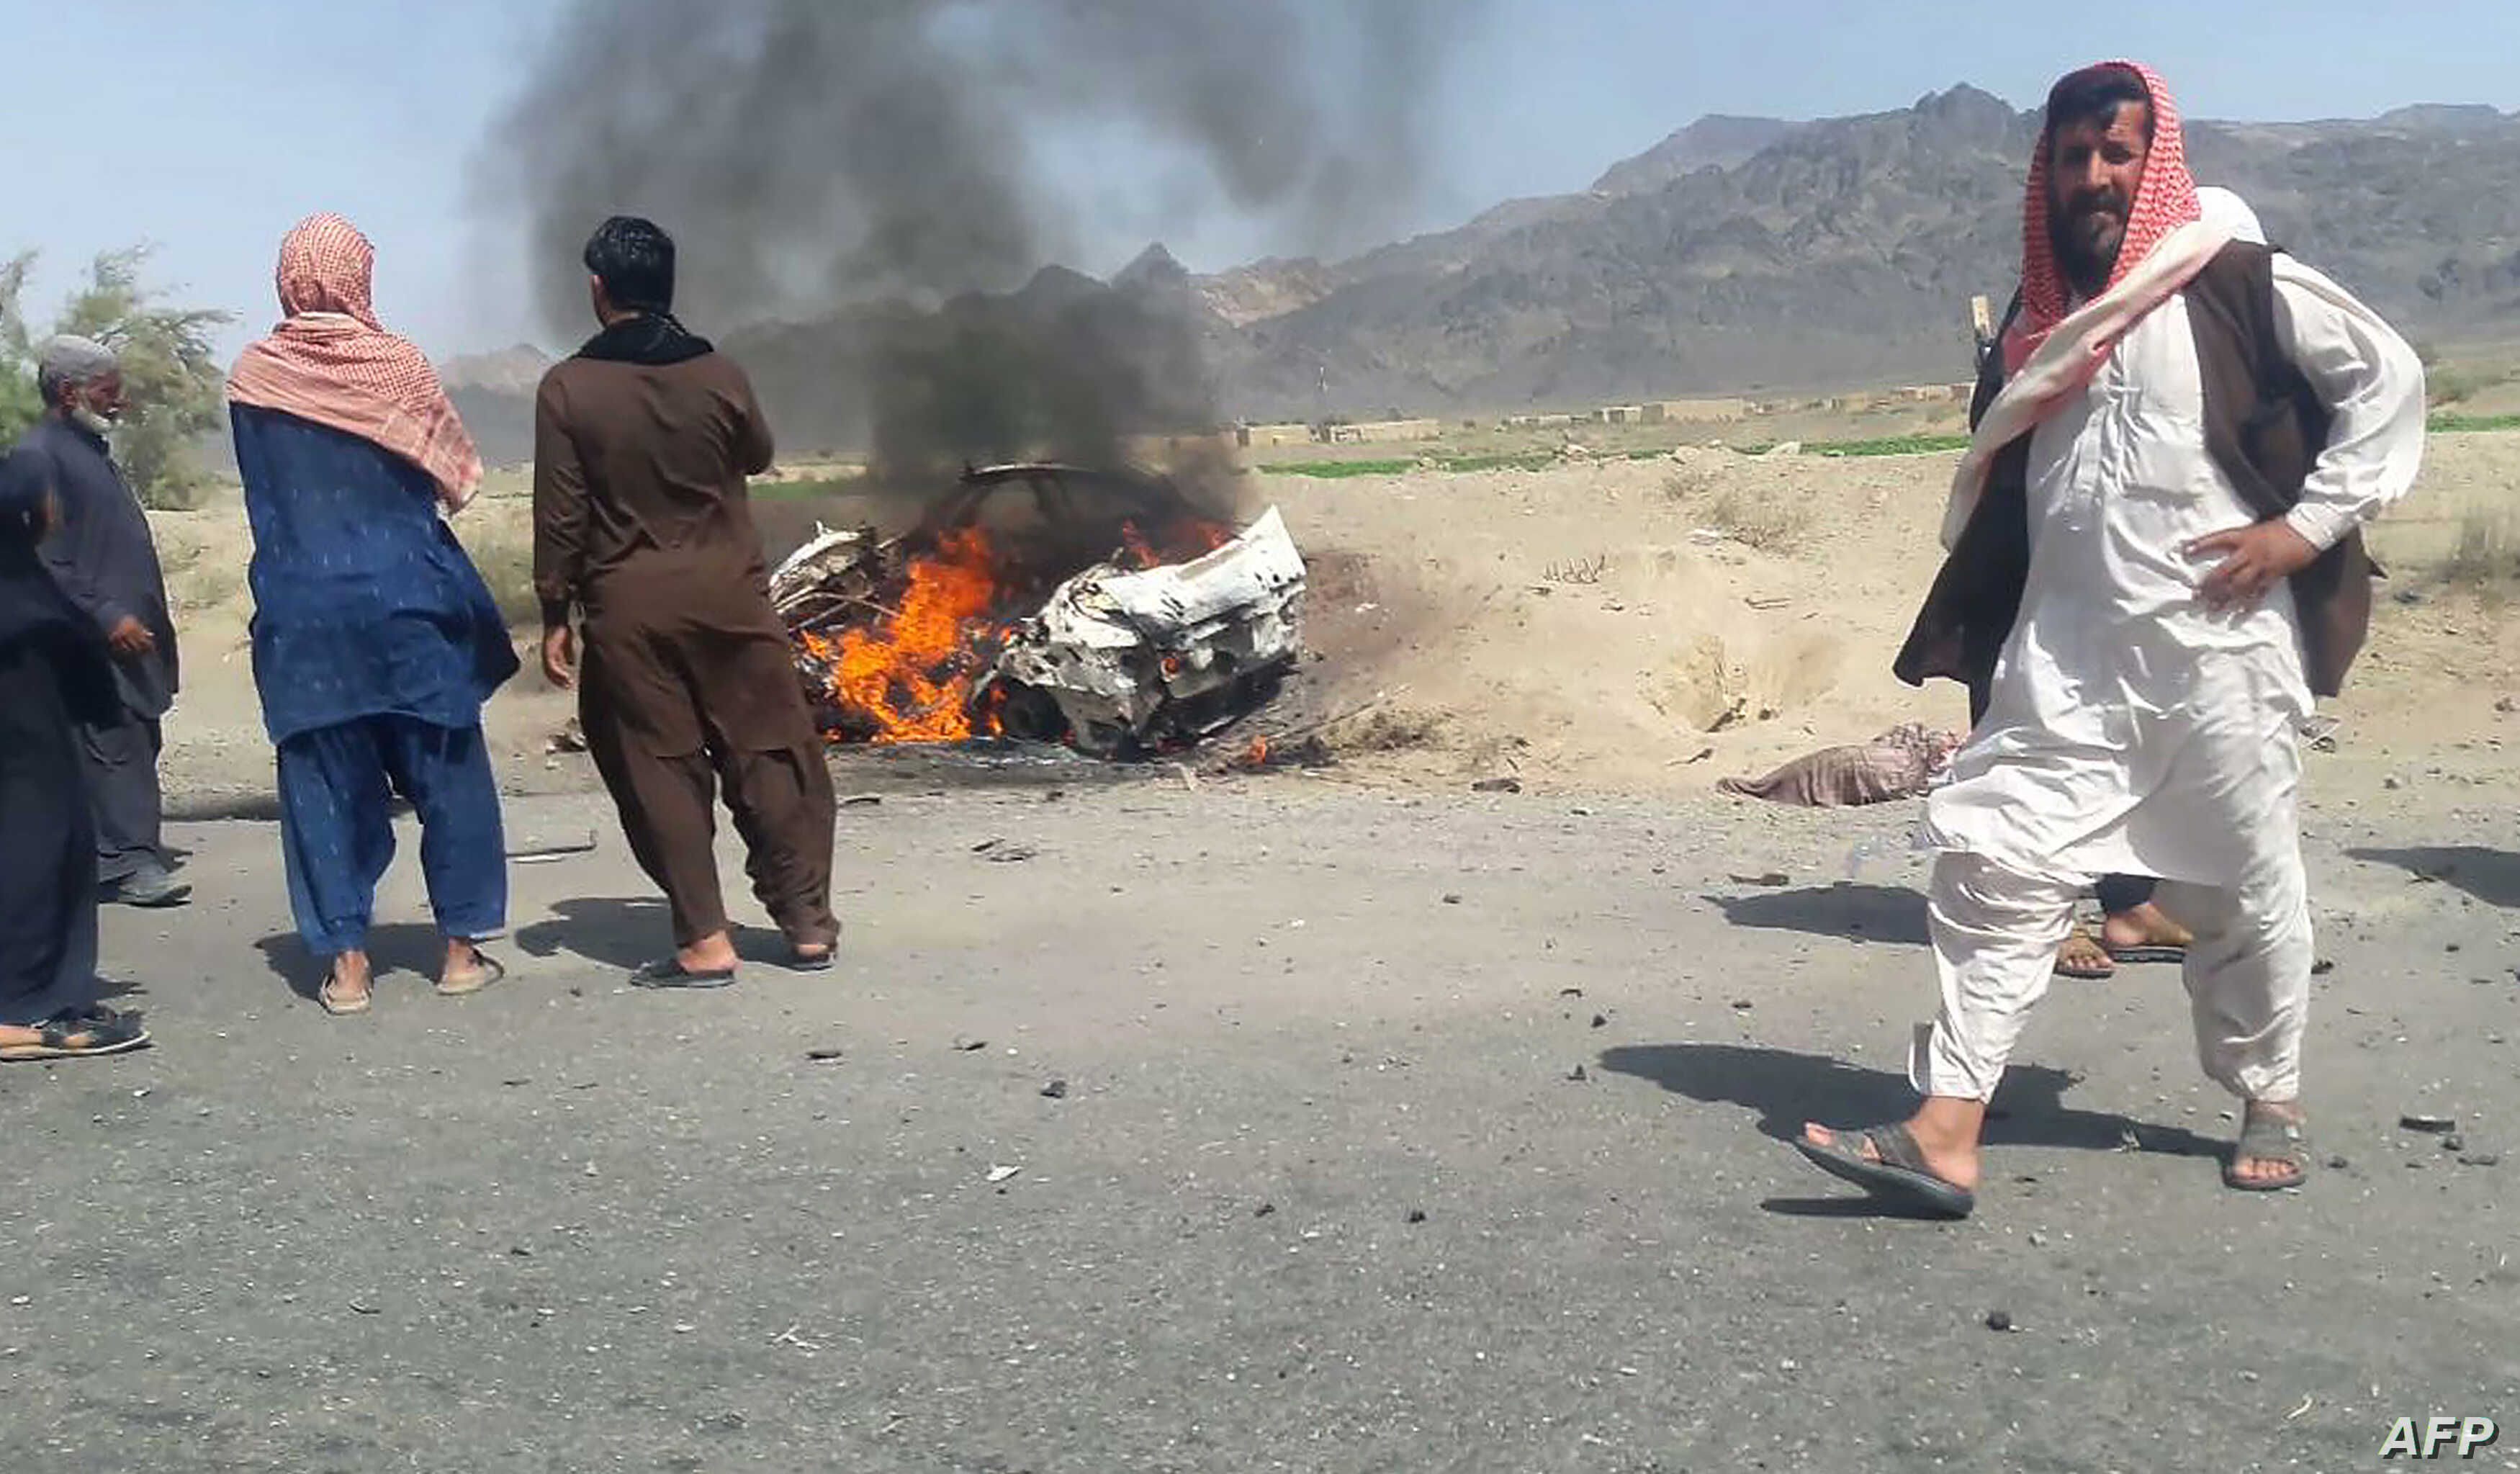 Pakistani local residents gather around a burning vehicle hit by a U.S. drone strike, May 21, 2016. Afghan Taliban Mullah Akhtar Mansoor was the target of the drone near Dalbandin, Baluchistan, Pakistan.